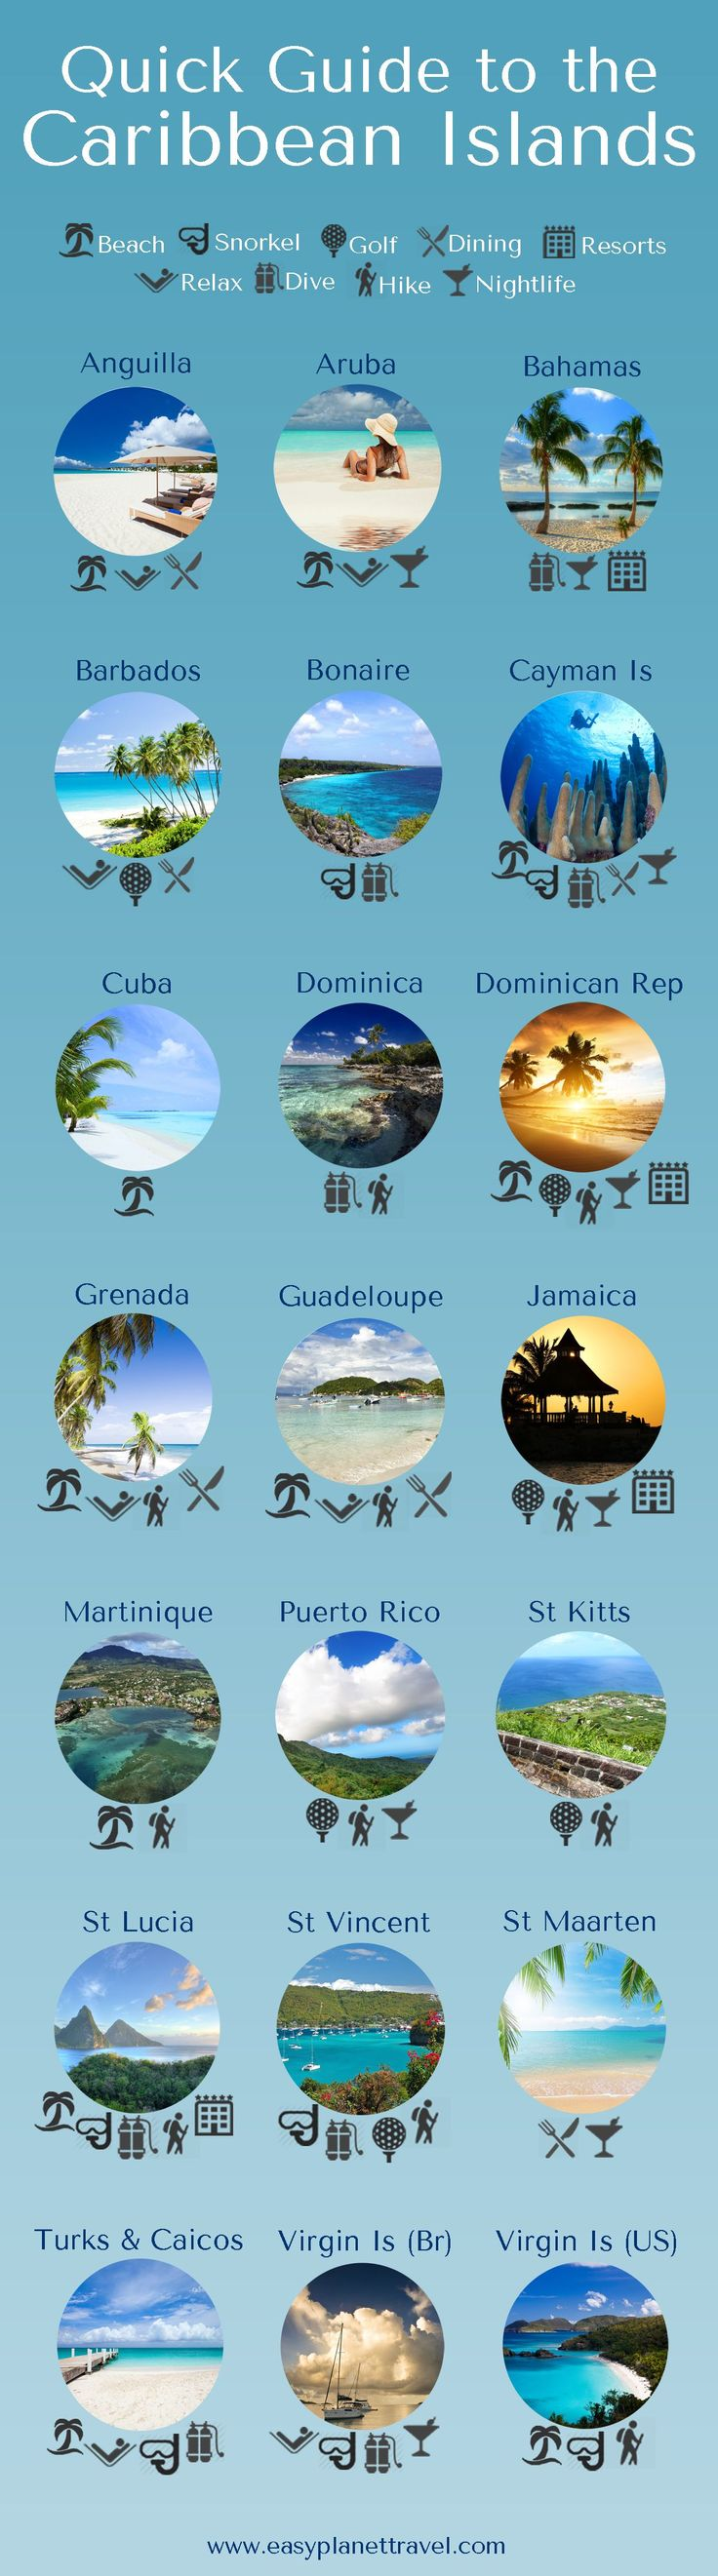 Quick easy guide to the best Caribbean Islands | Easy Planet Travel - World travel made simple